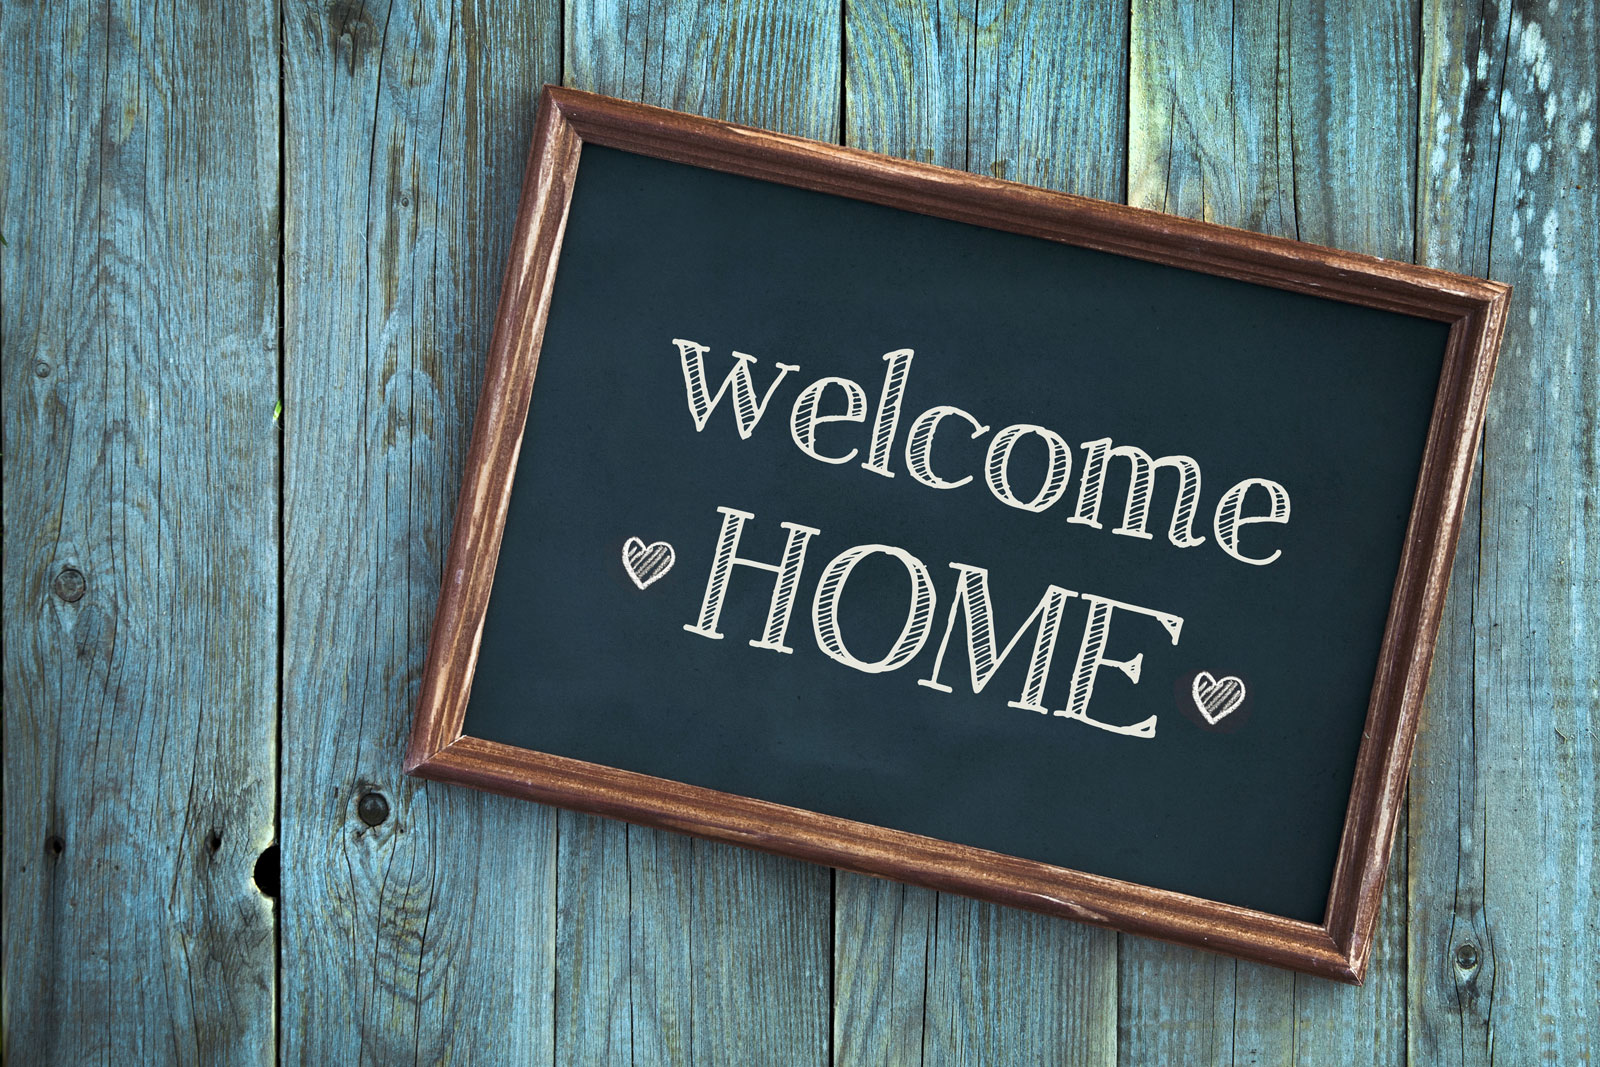 welcomehome Conscious Homes